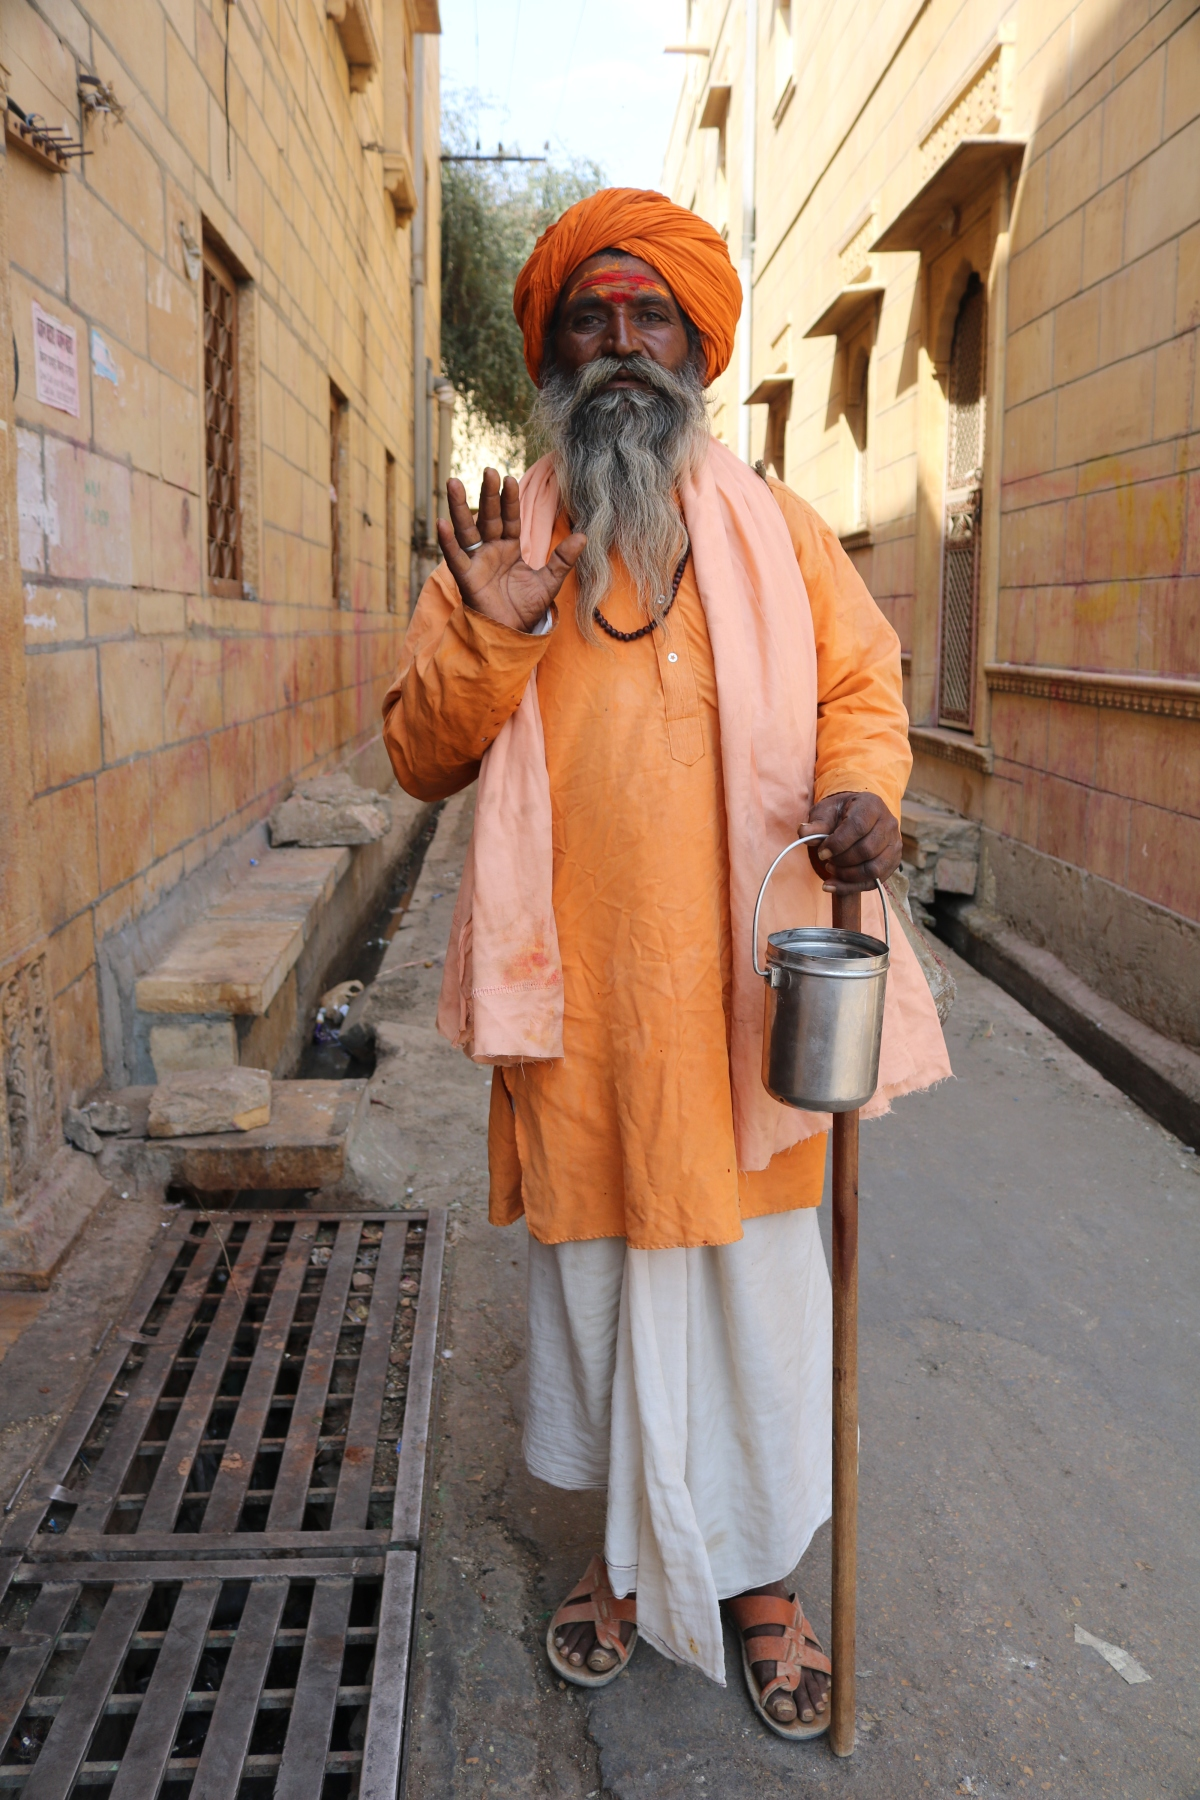 Sadhu in Jaisalmer, India